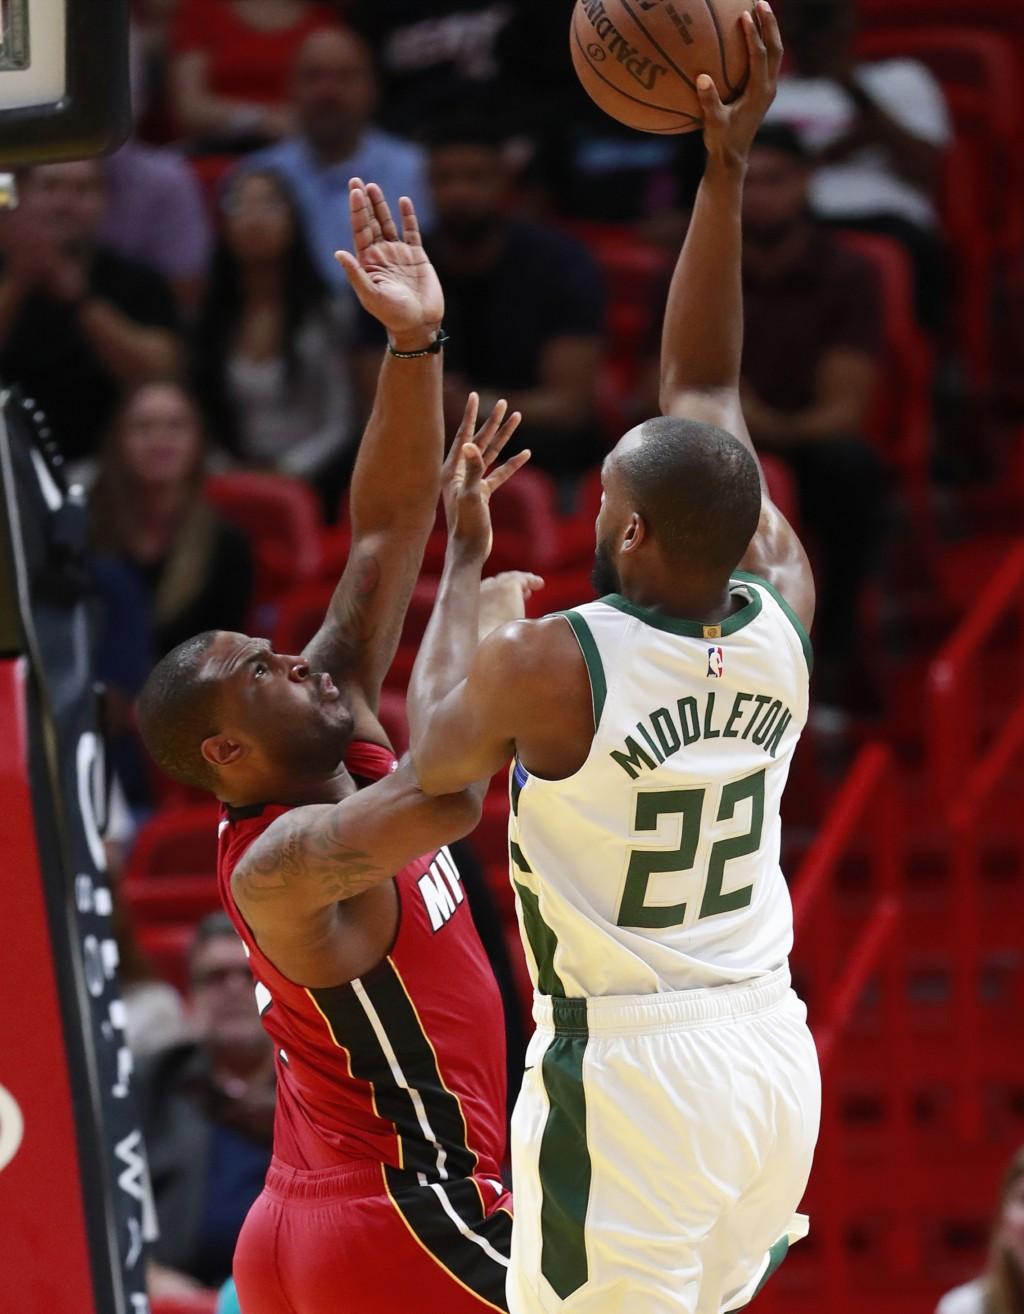 Milwaukee Bucks forward Khris Middleton (22) shoots against Miami Heat guard Dion Waiters during the first half of an NBA basketball game Friday, Marc